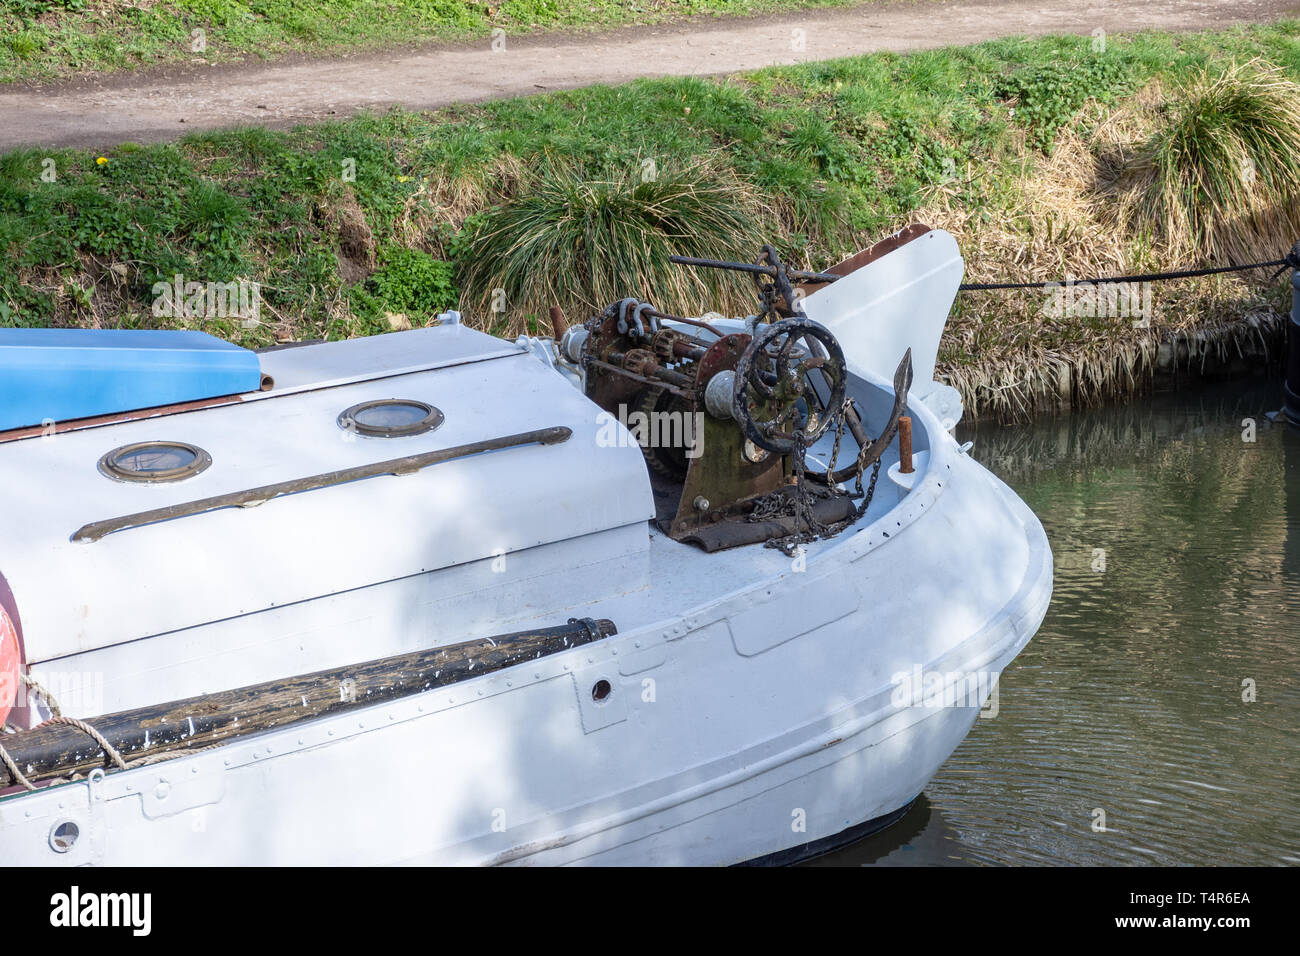 The stern of a river sailing boat with an old vintage rusty hand winch and anchor on the Kennet and Avon canal in Bradford on Avpn Wiltshire. Stock Photo